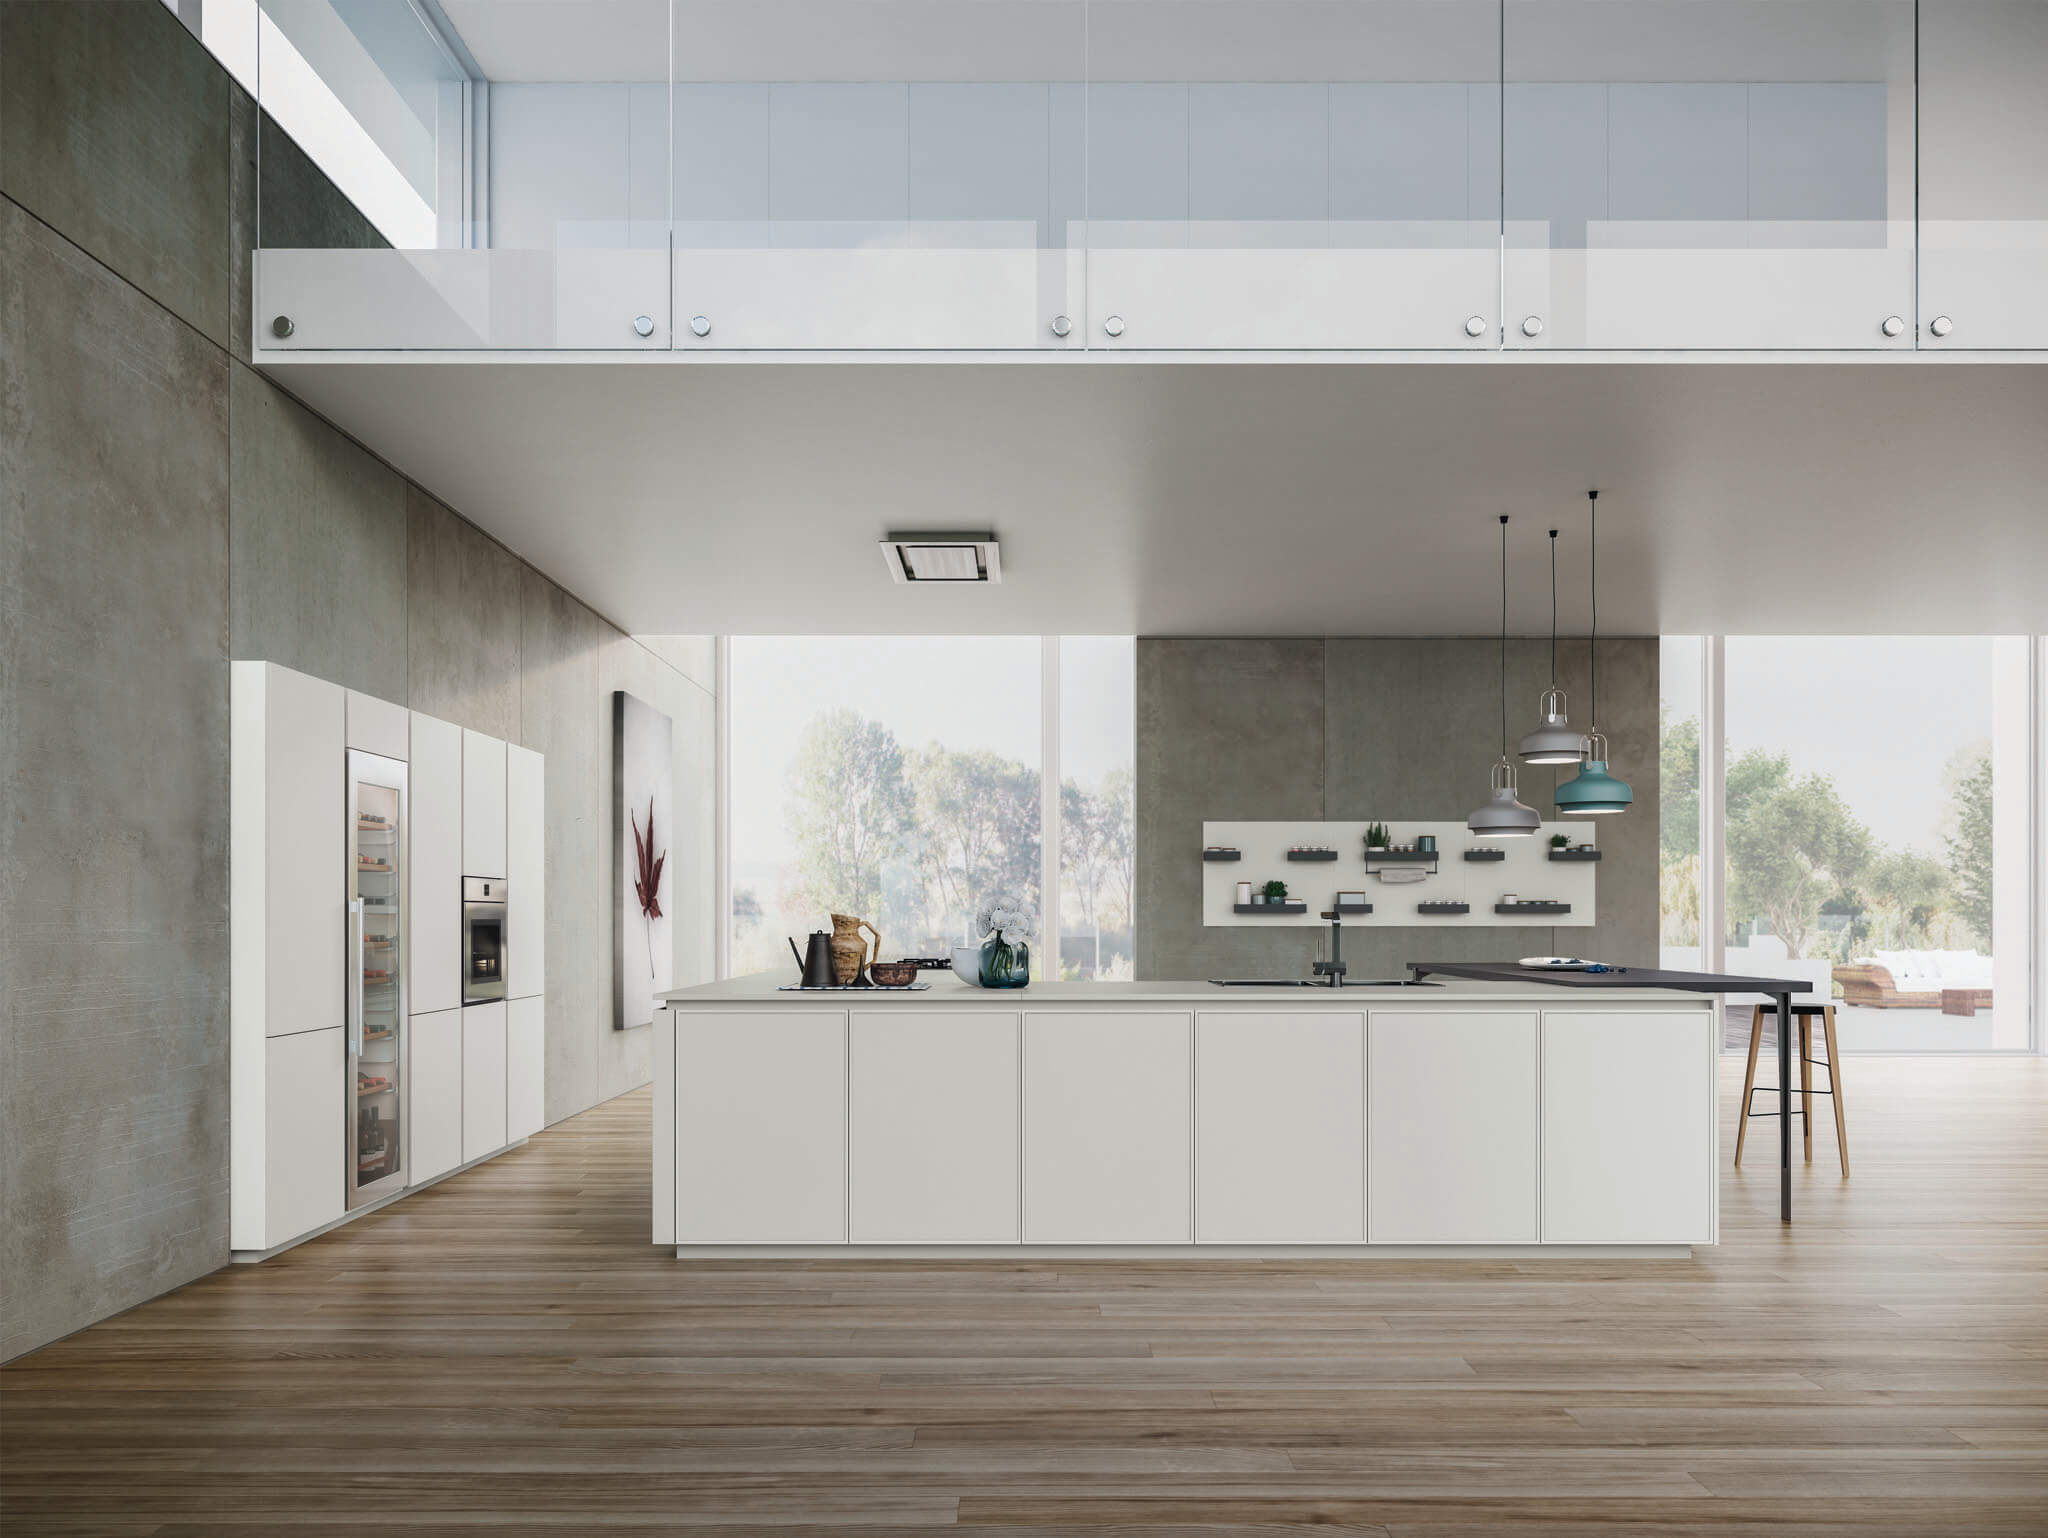 Karen contemporary kitchen cabinet glossy